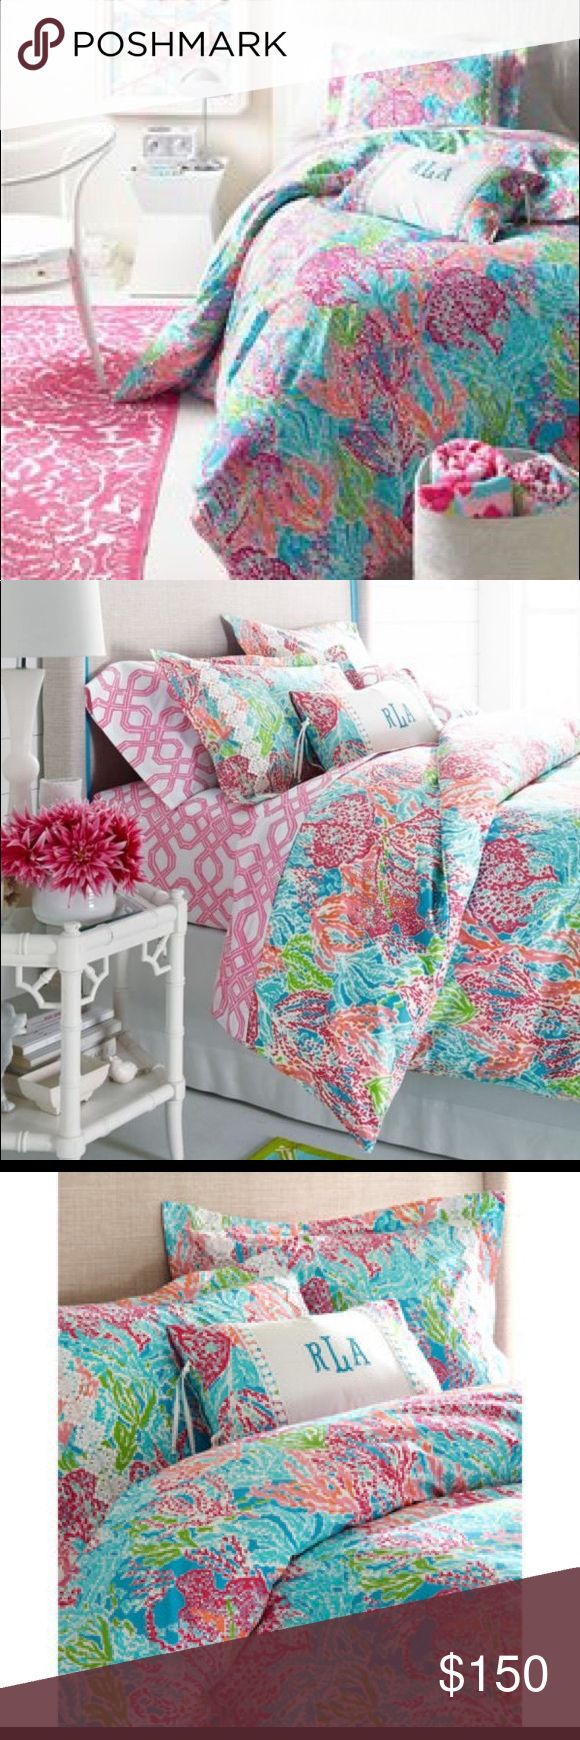 "Lilly Pulitzer Twin XL duvet cover and two shams Lilly Pulitzer Twin XL duvet cover and two sham pillow cases in ""Let's Cha Cha"" print Lilly Pulitzer Other"